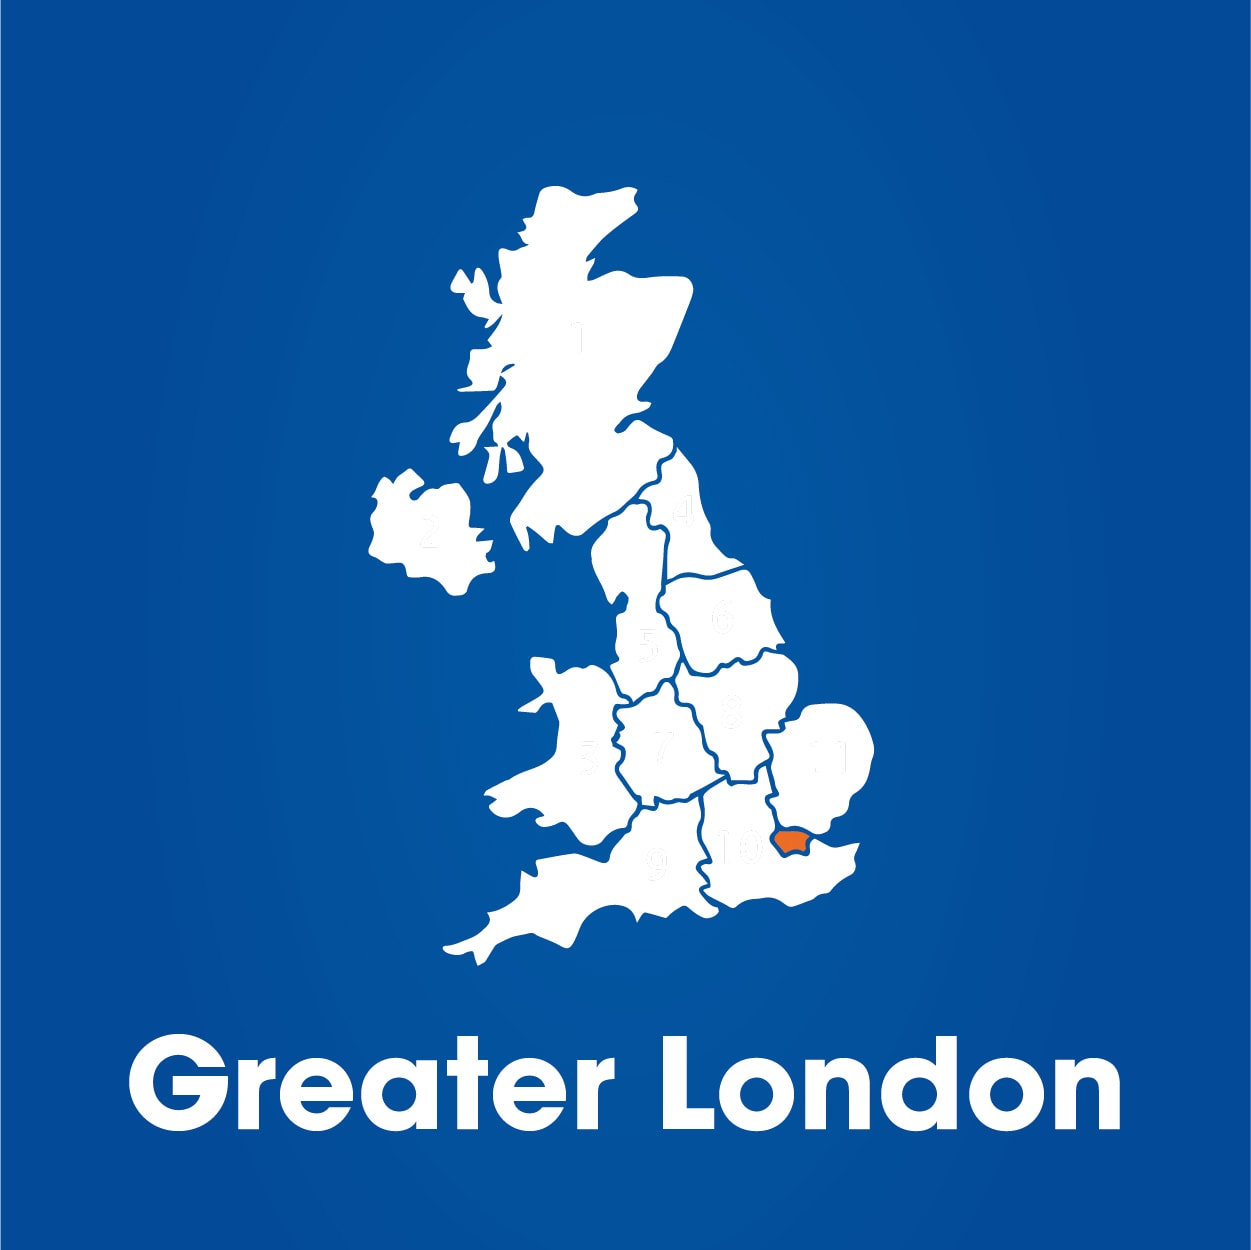 Greater London region highlighted on map